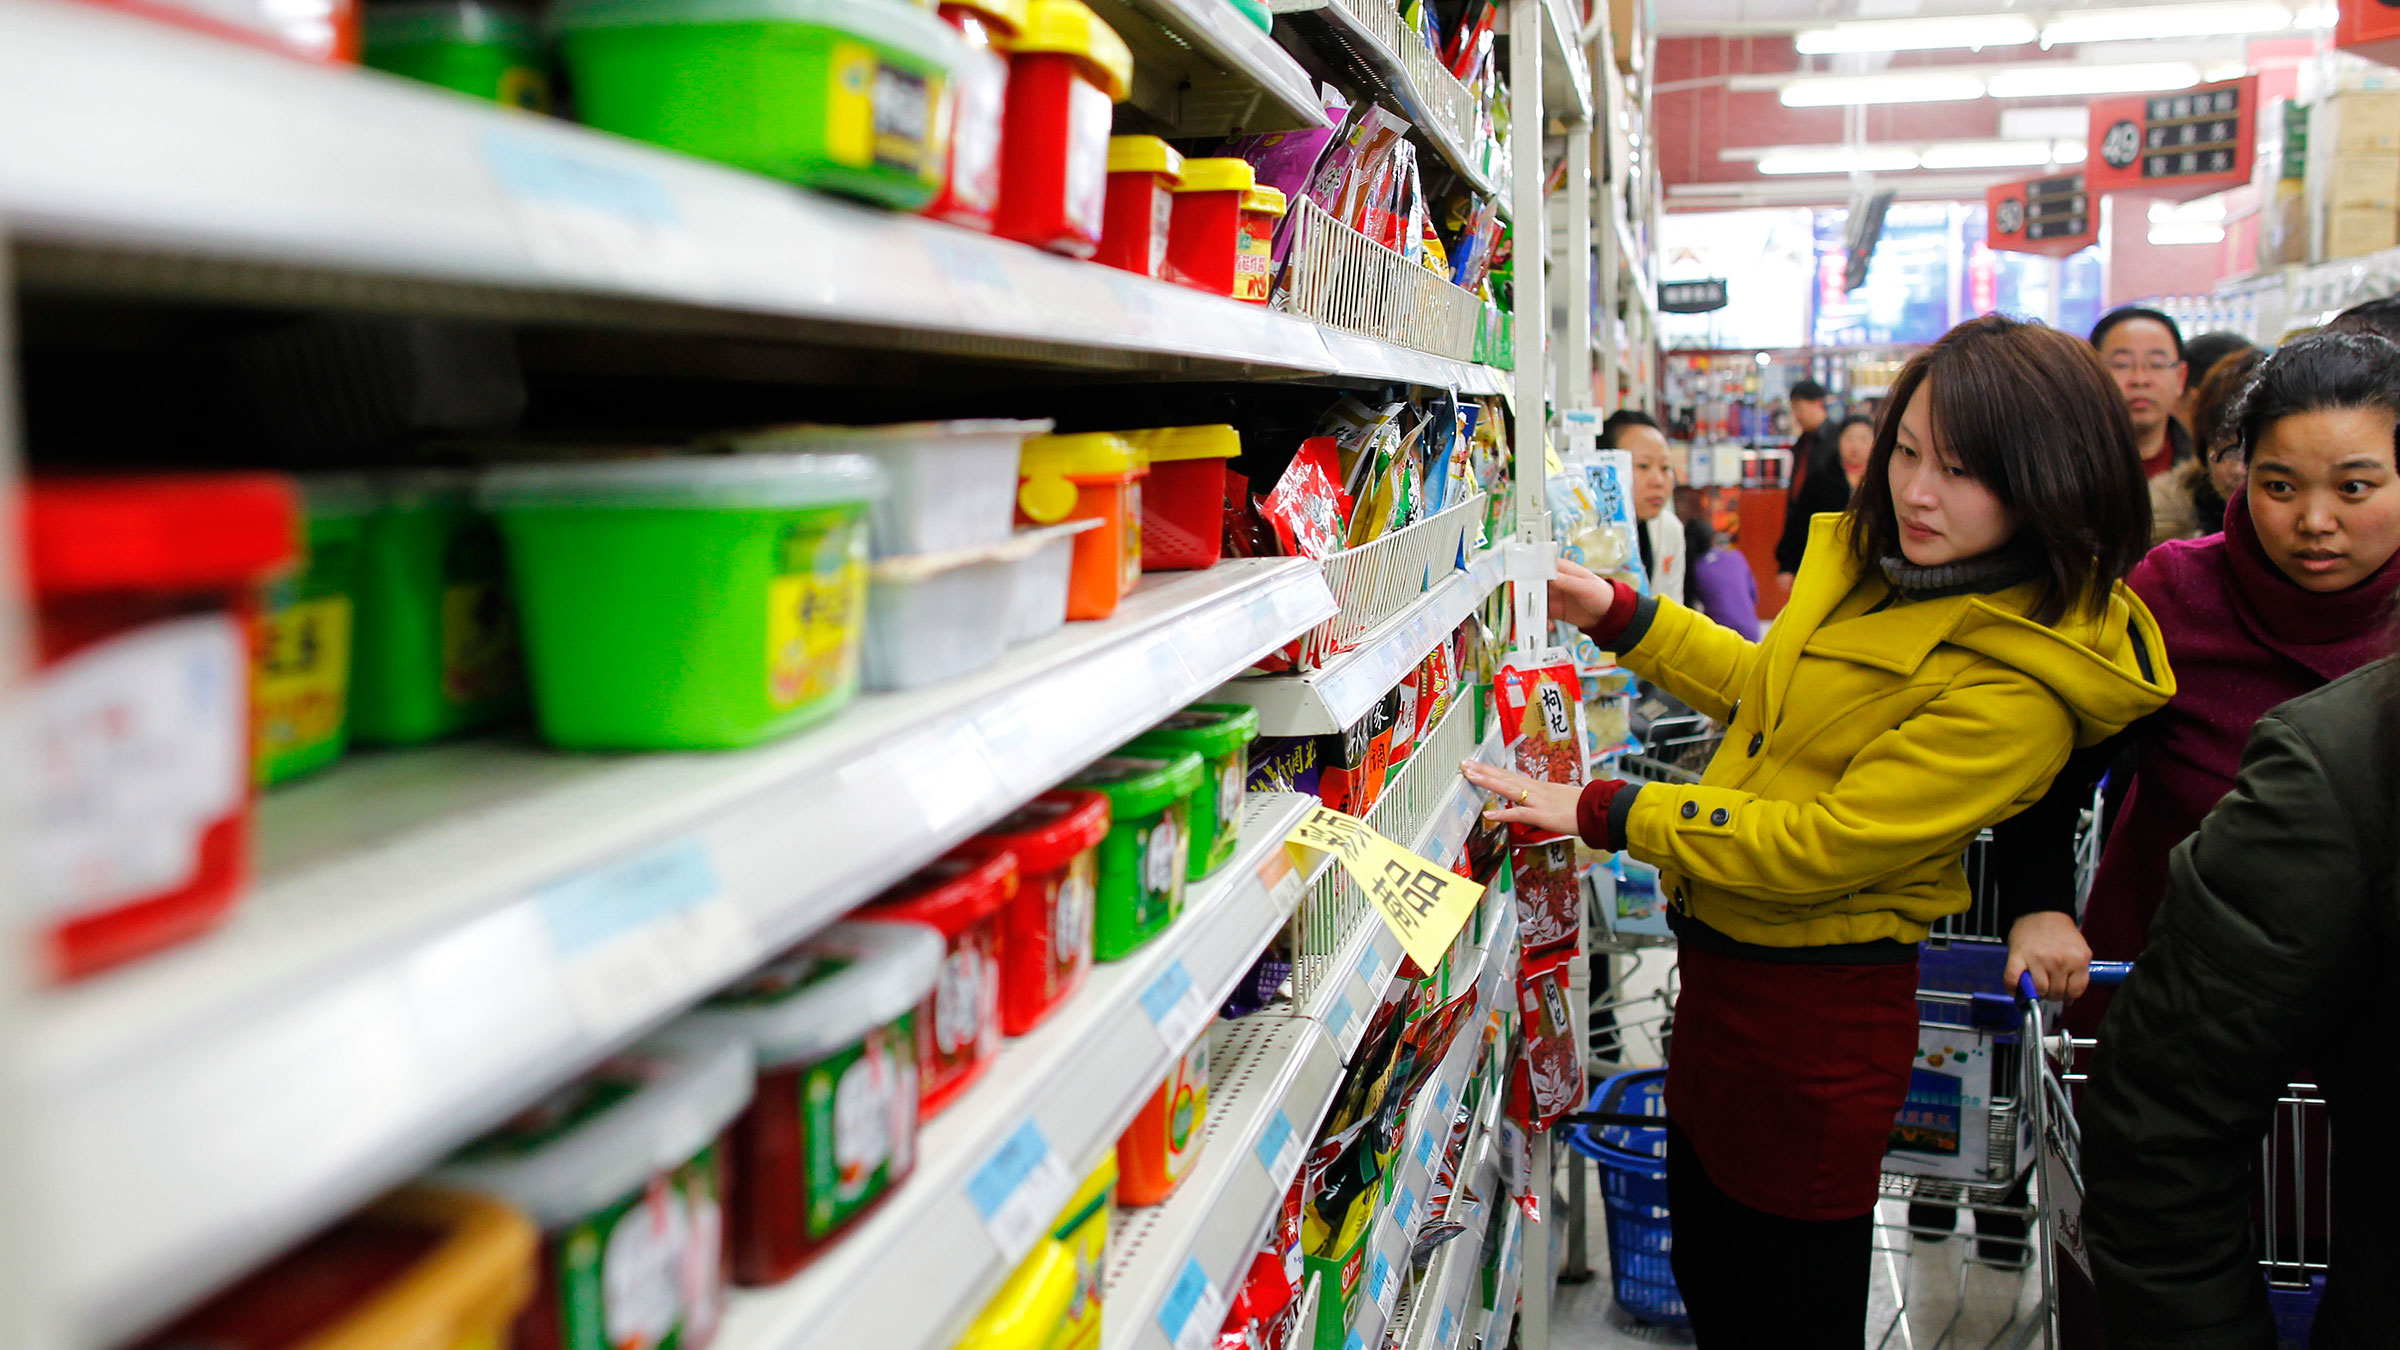 china-grocery-store-9242012